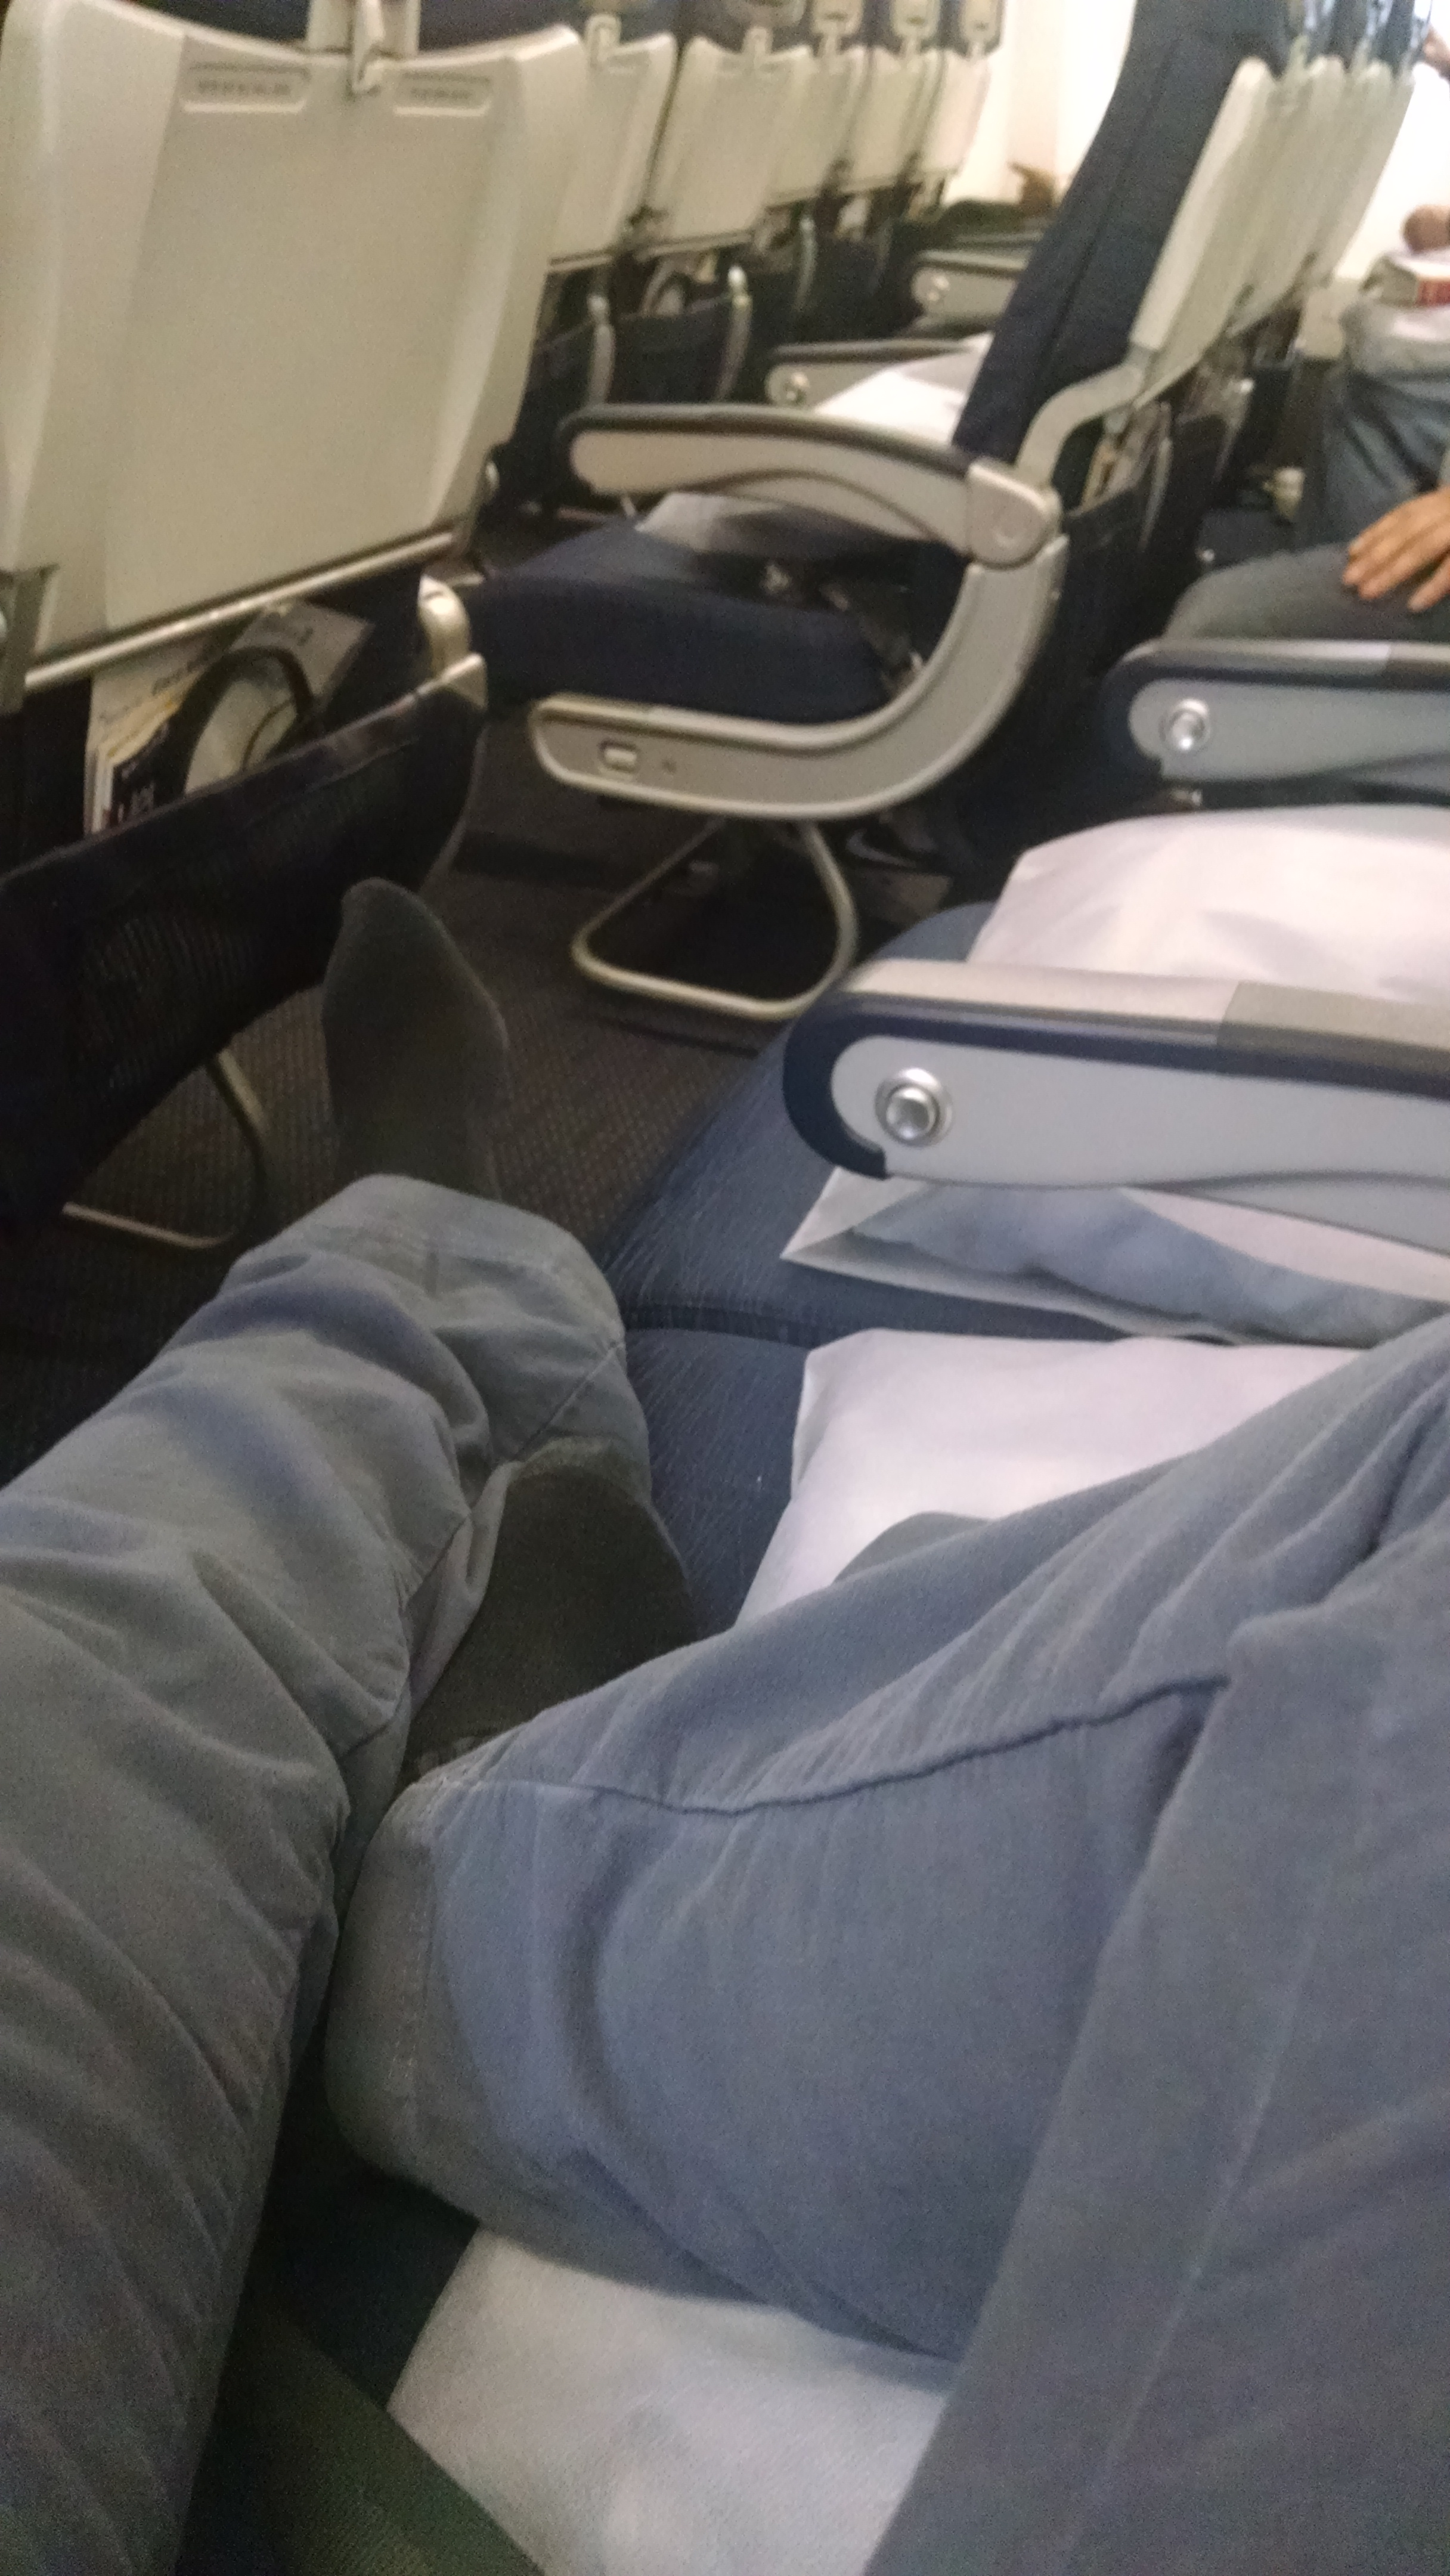 Legs across empty airplane seats